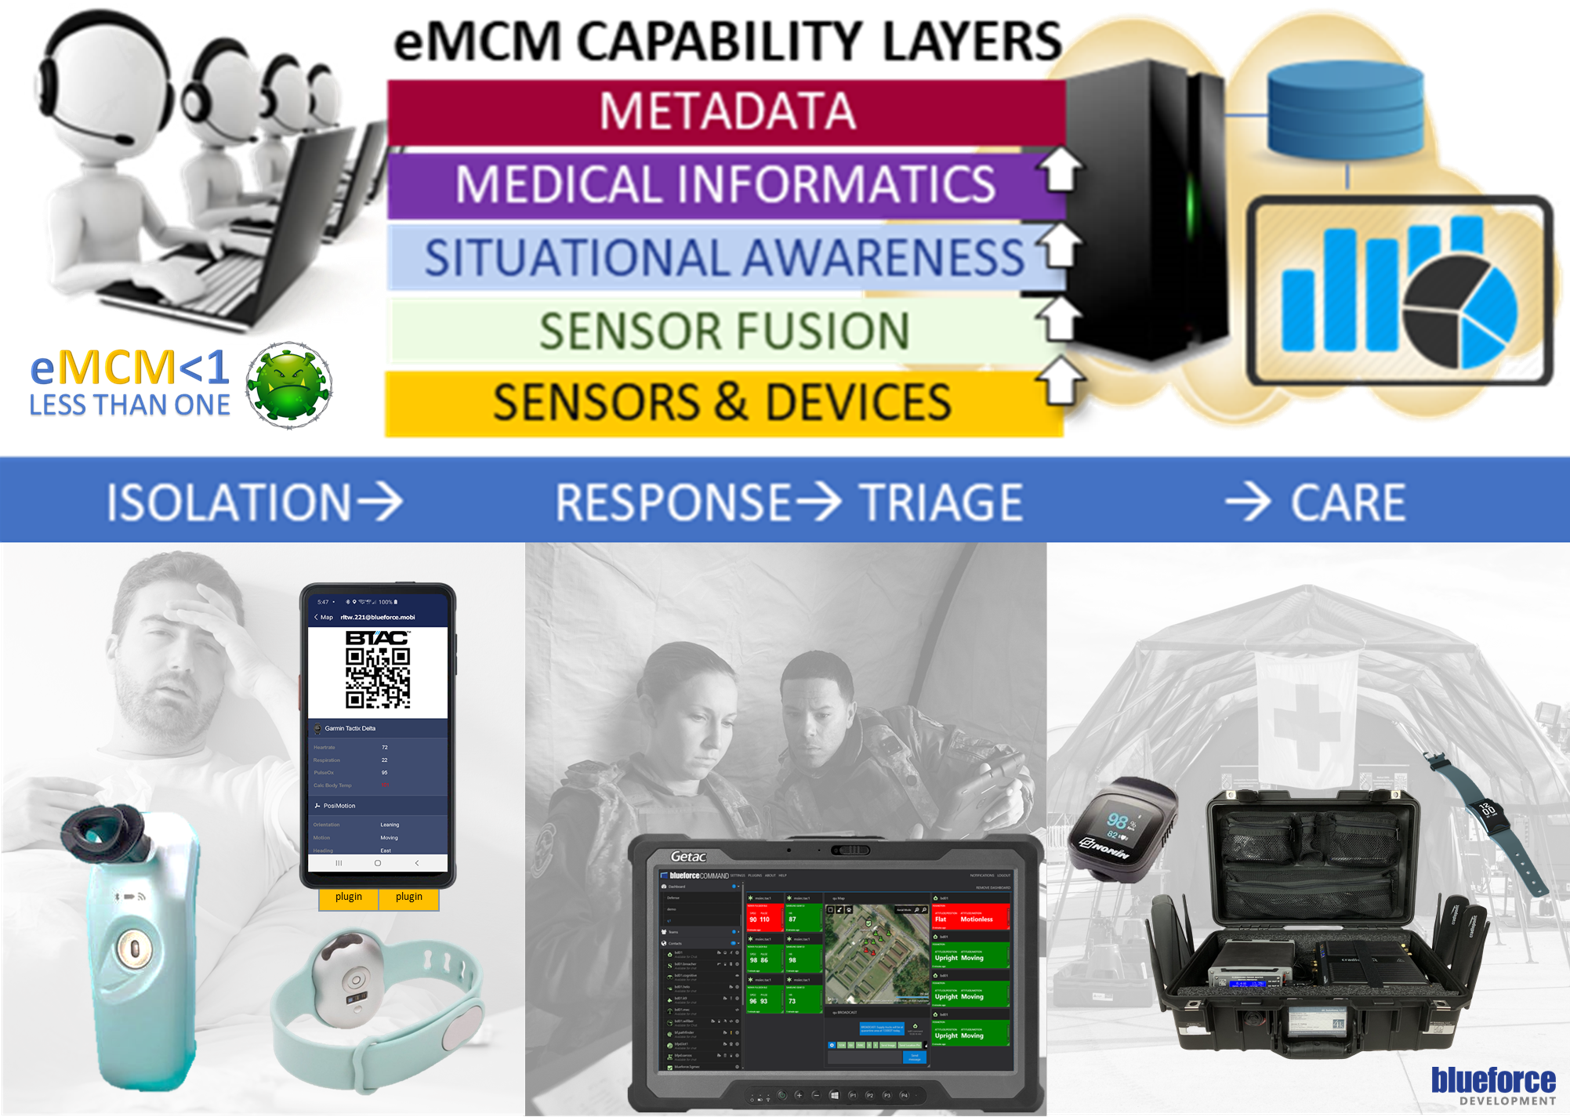 Electronic Medical Countermeasures (eMCM) Mitigate & Contain